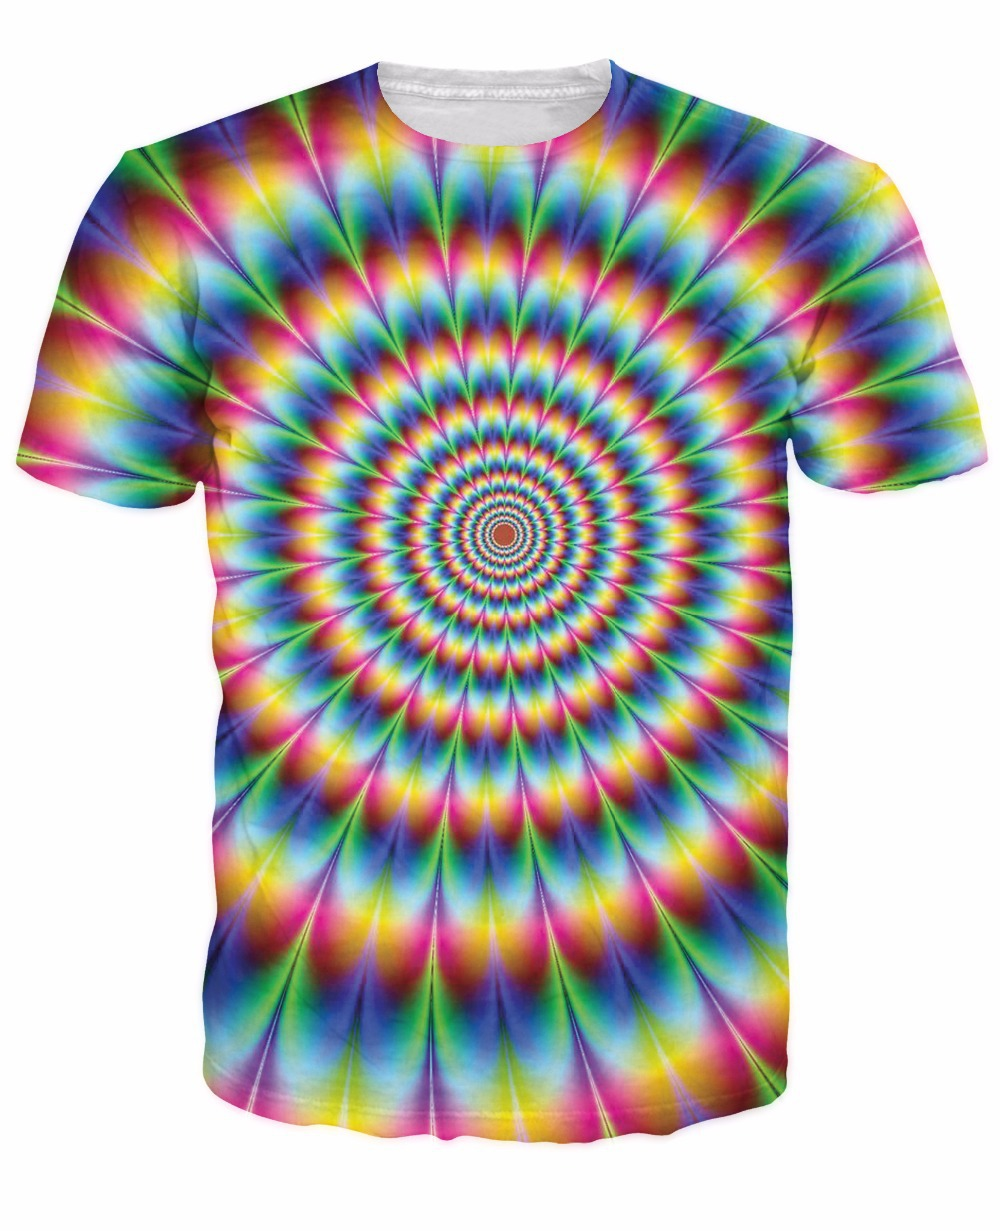 2018 New Arrive 3d Fashion Clothing Women Men Tees Into The Rainbow T-Shirt Psychedelic Colorful T Shirt Summer Style Camisetas